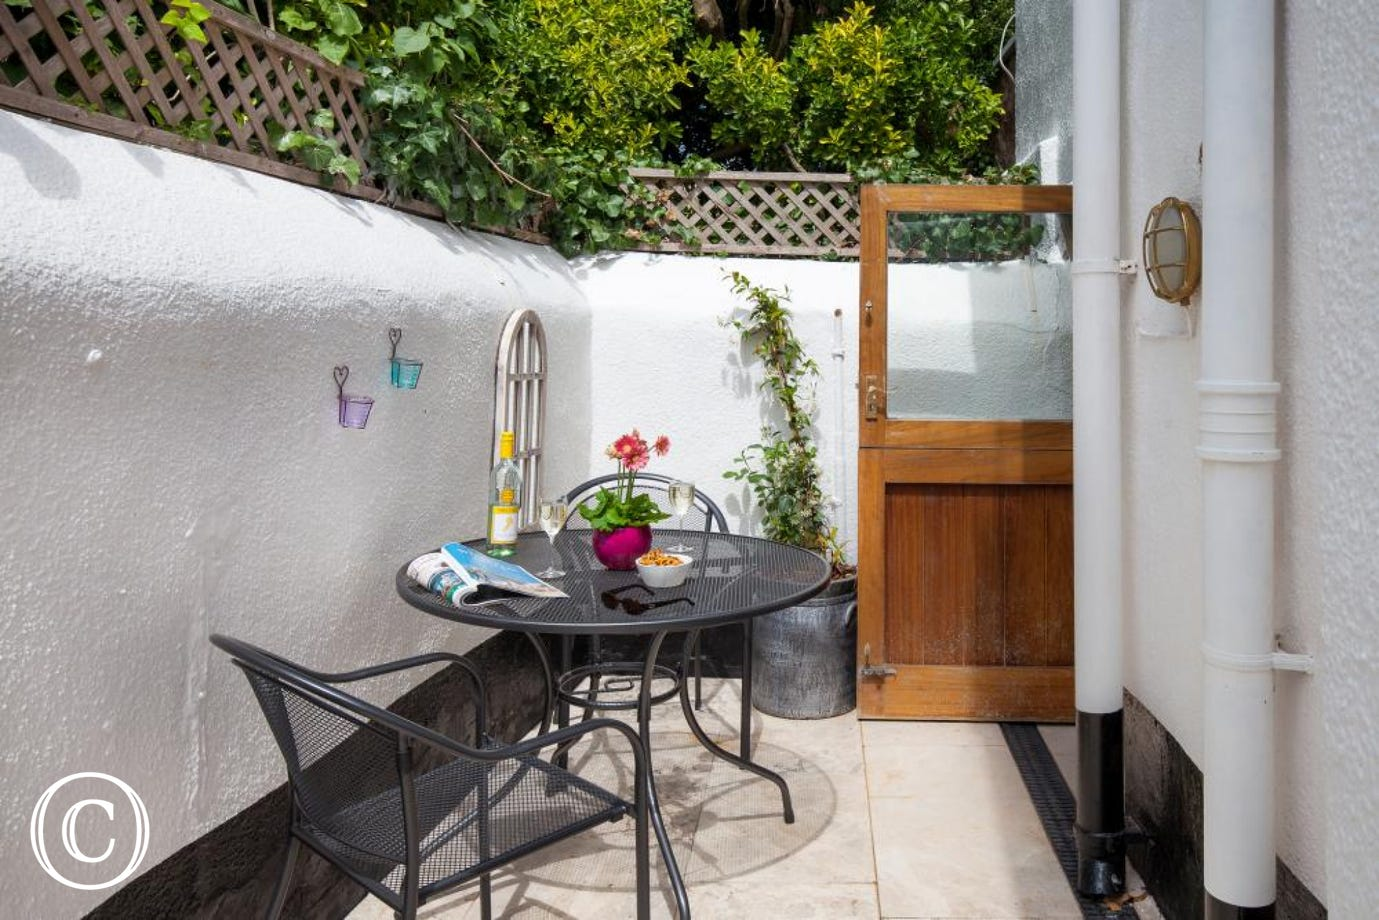 Sunny outside enclosed courtyard with table and chairs.